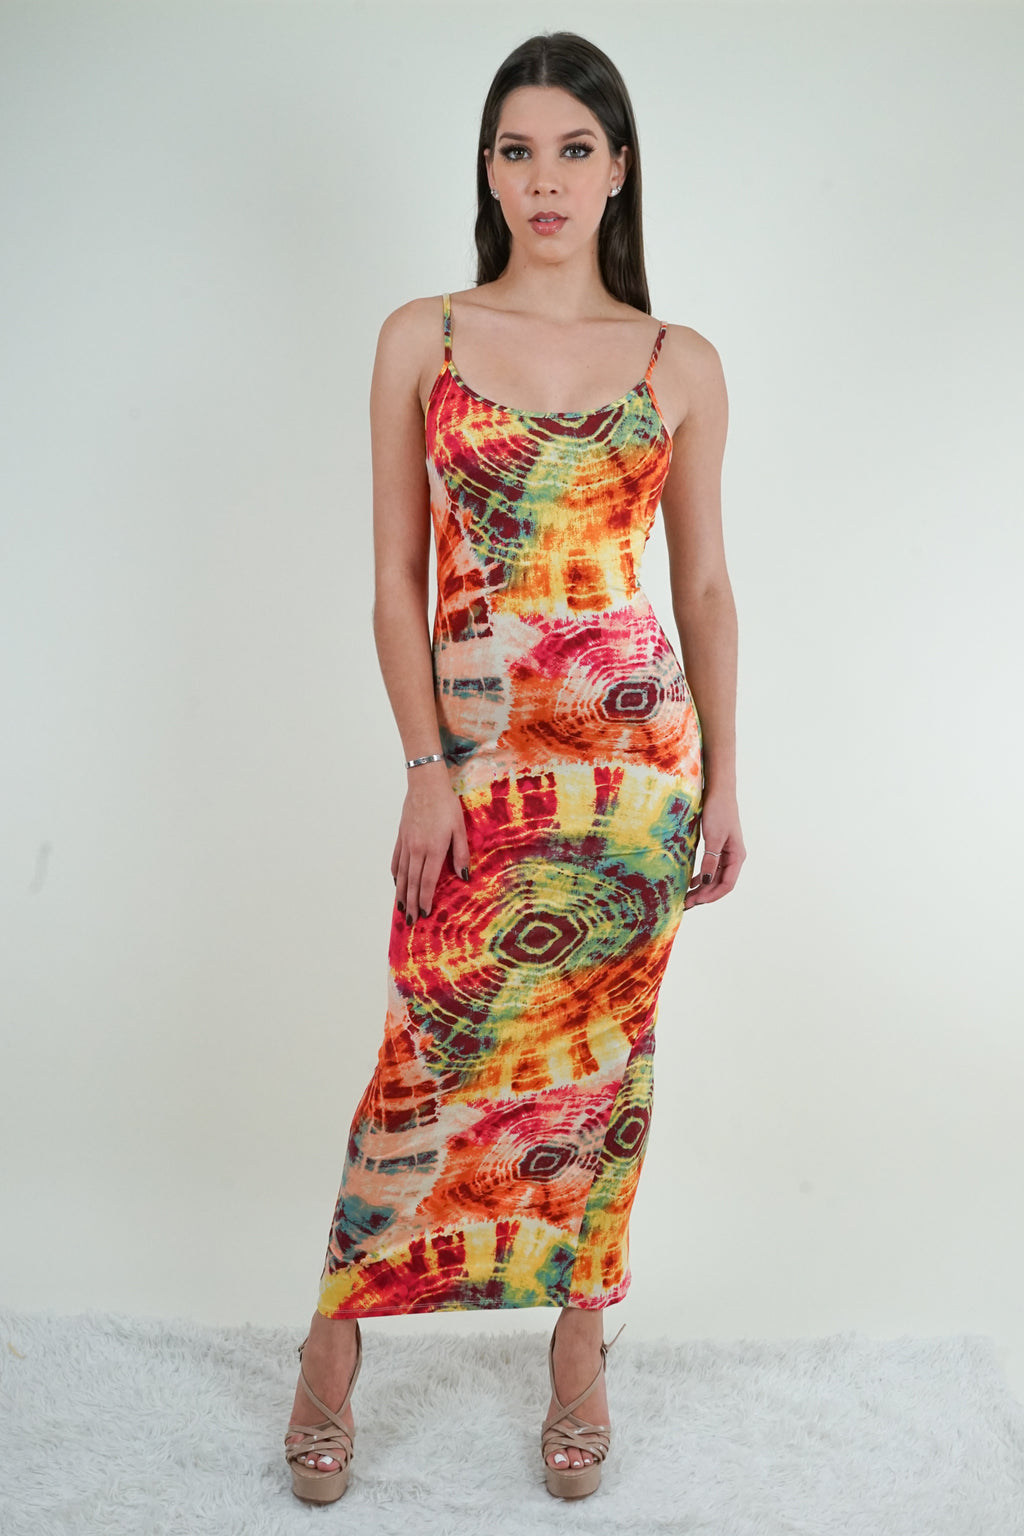 Orange Tie-Dye Maxi Dress